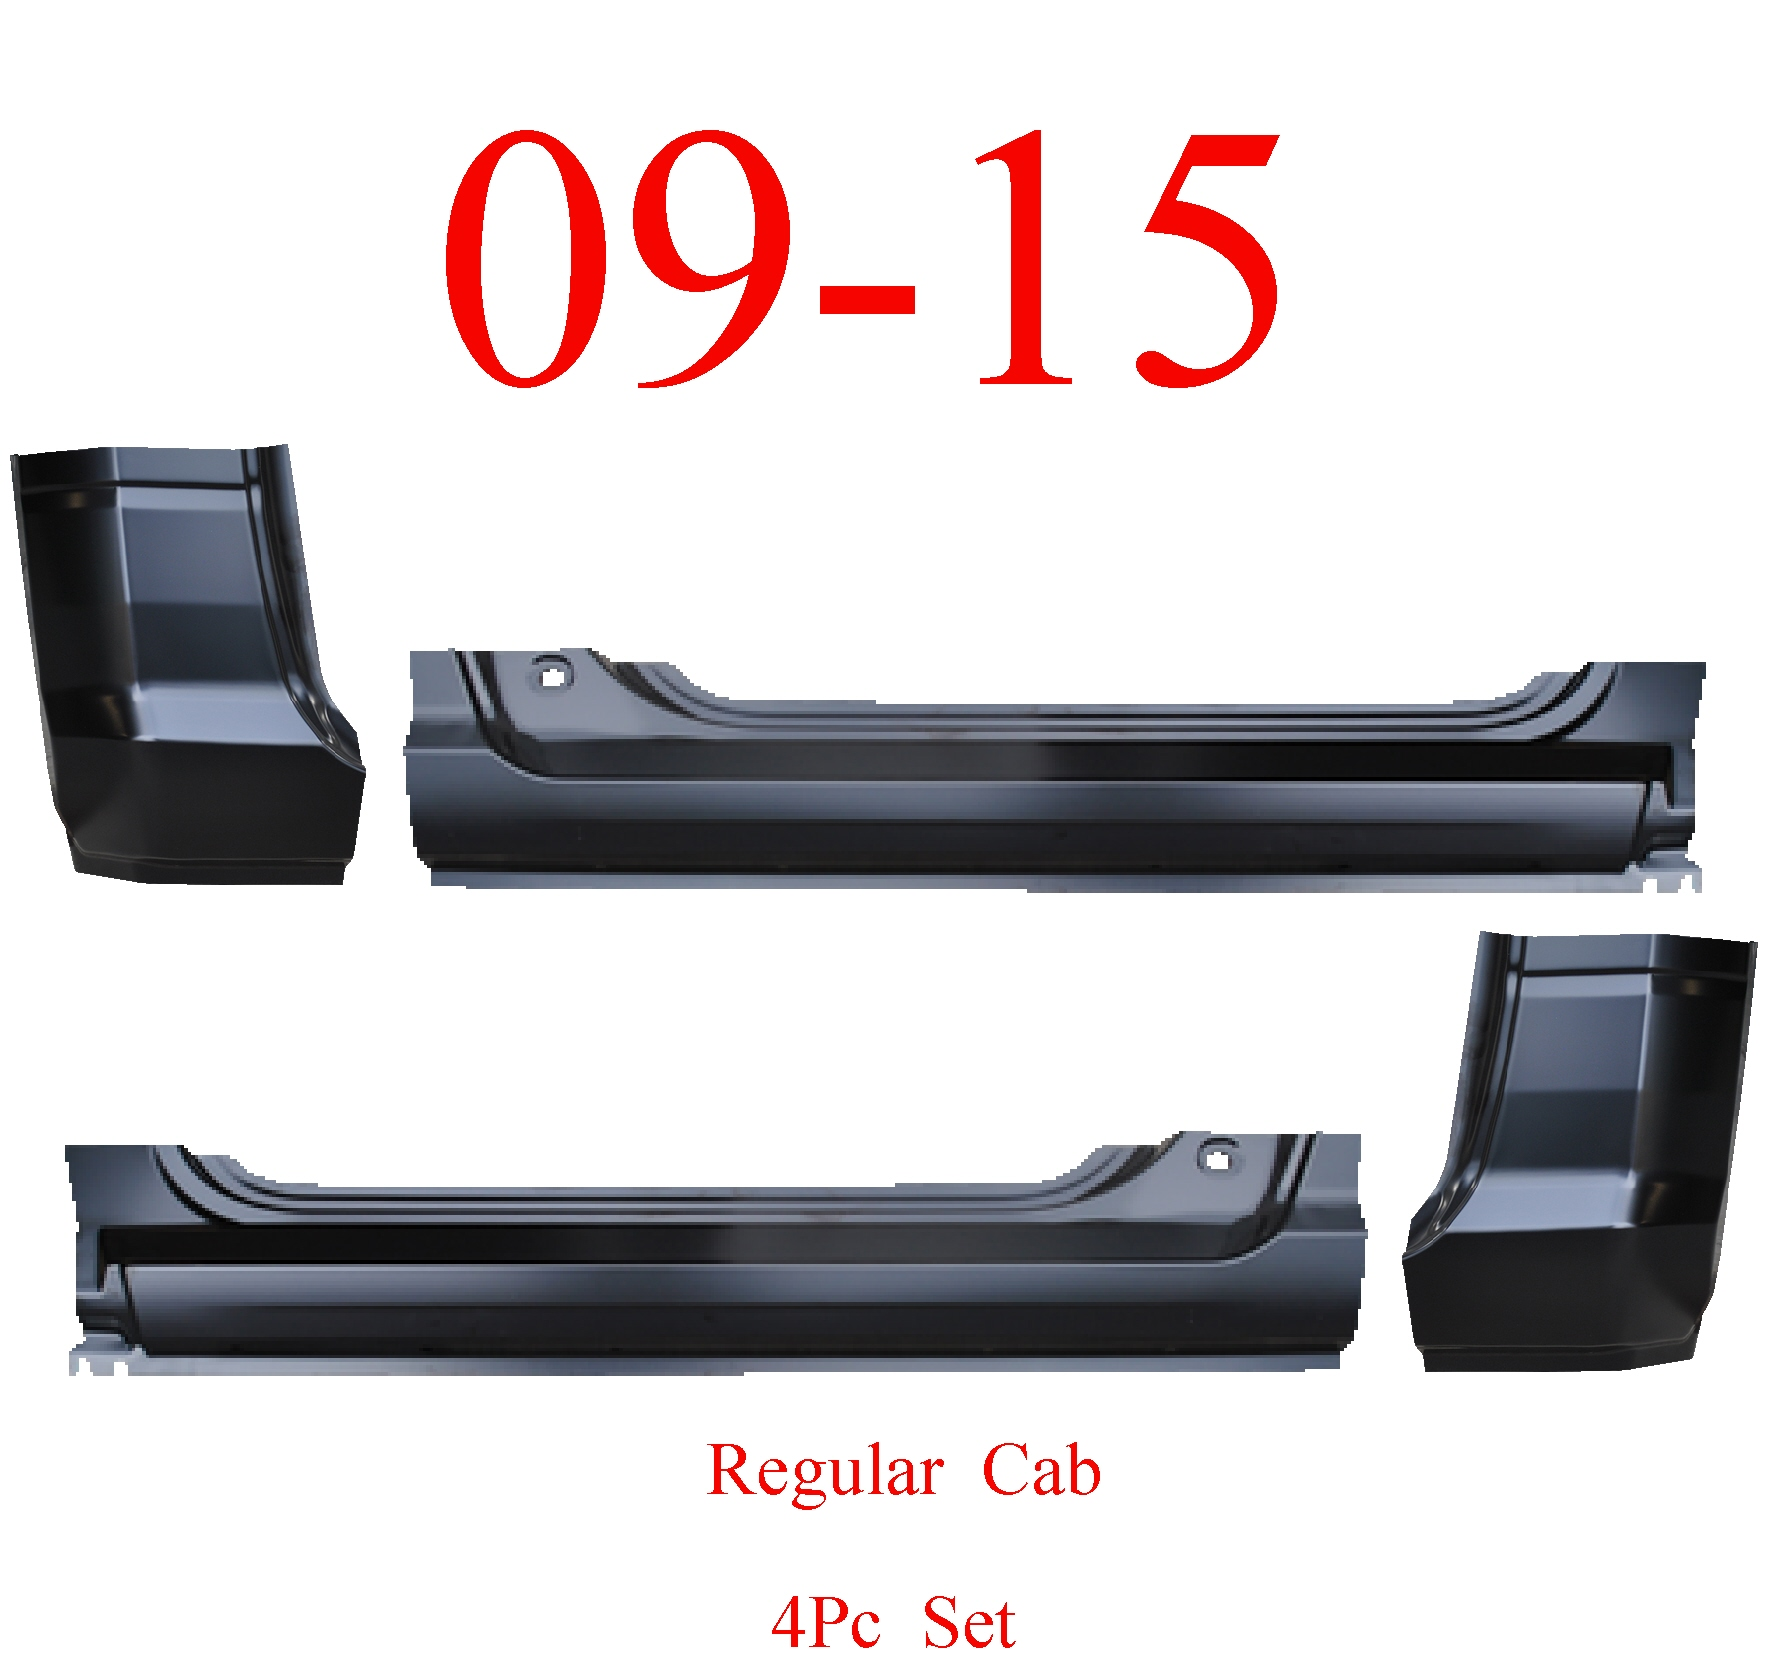 09-15 Ram 4Pc Regular Cab Extended Rocker & Cab Corner Kit